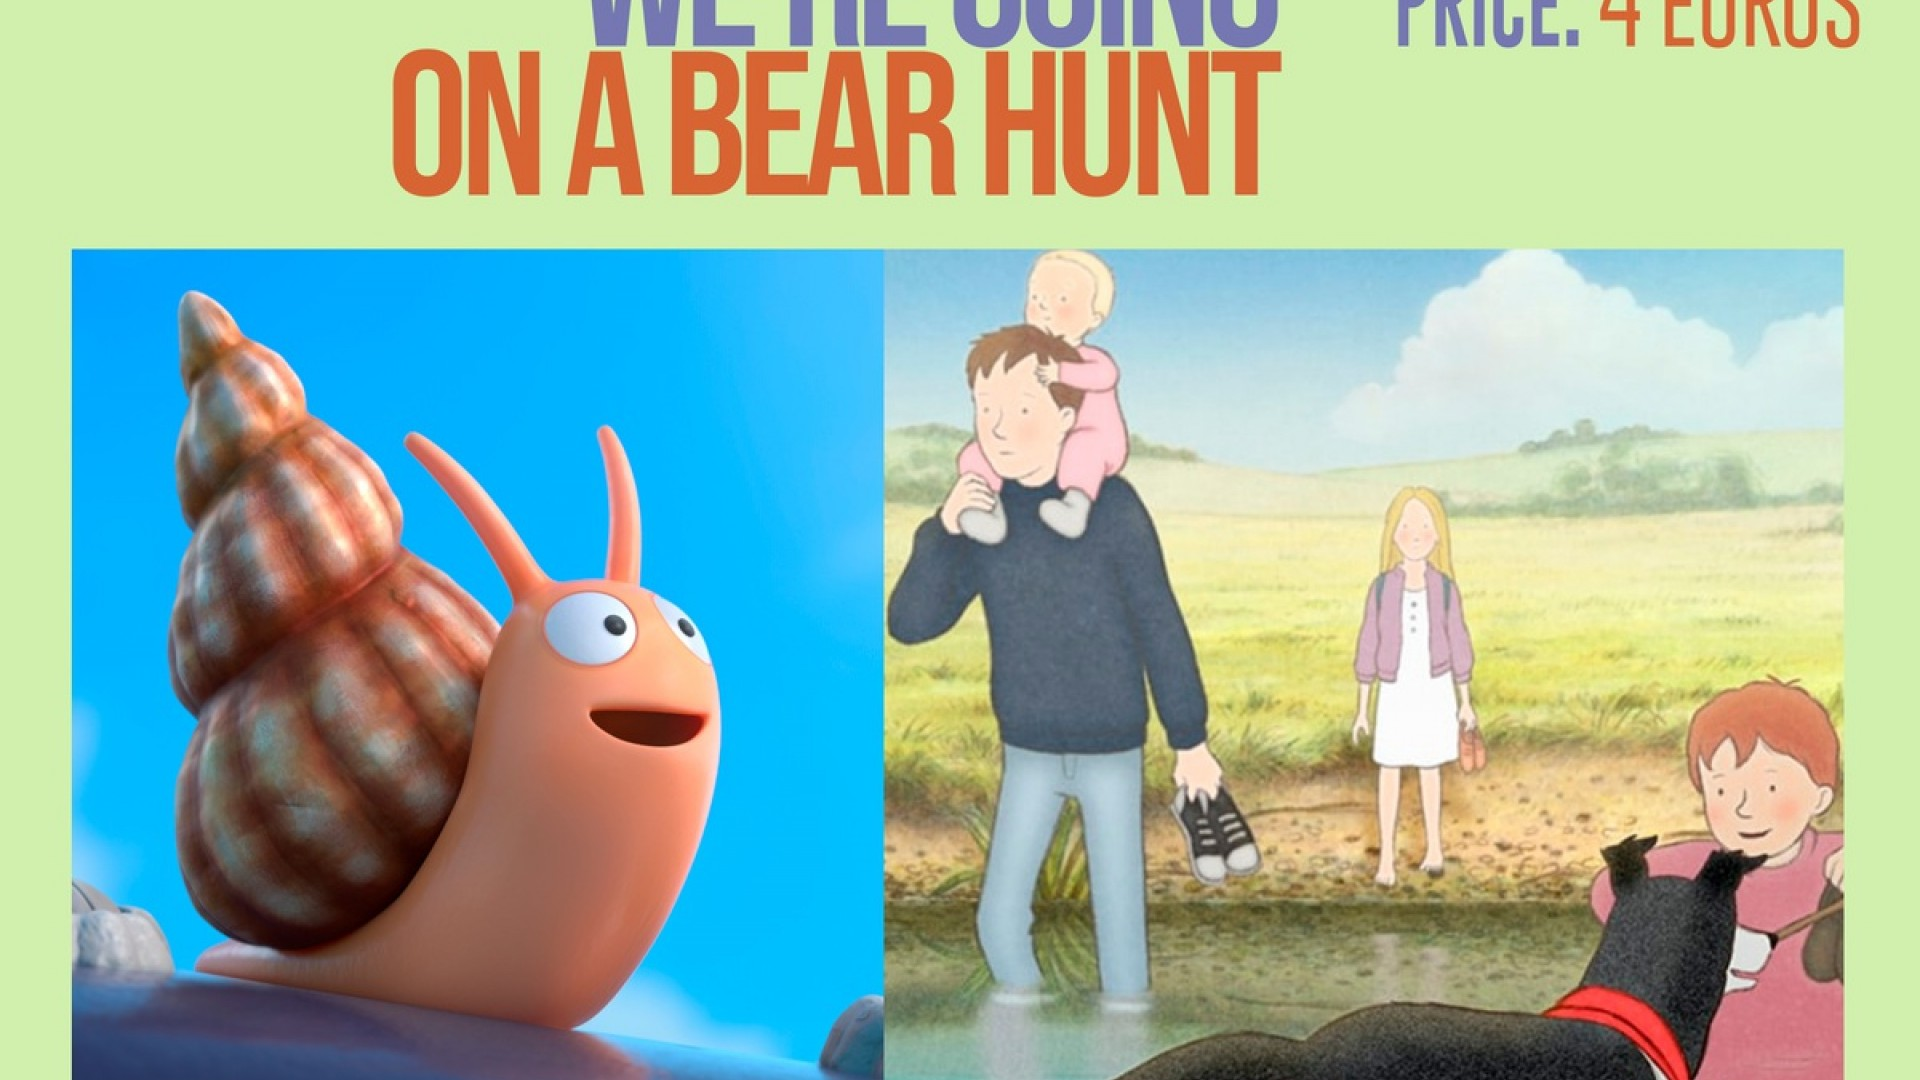 CineCiutatKids: Snale and the whale + We're going on a bear hunt